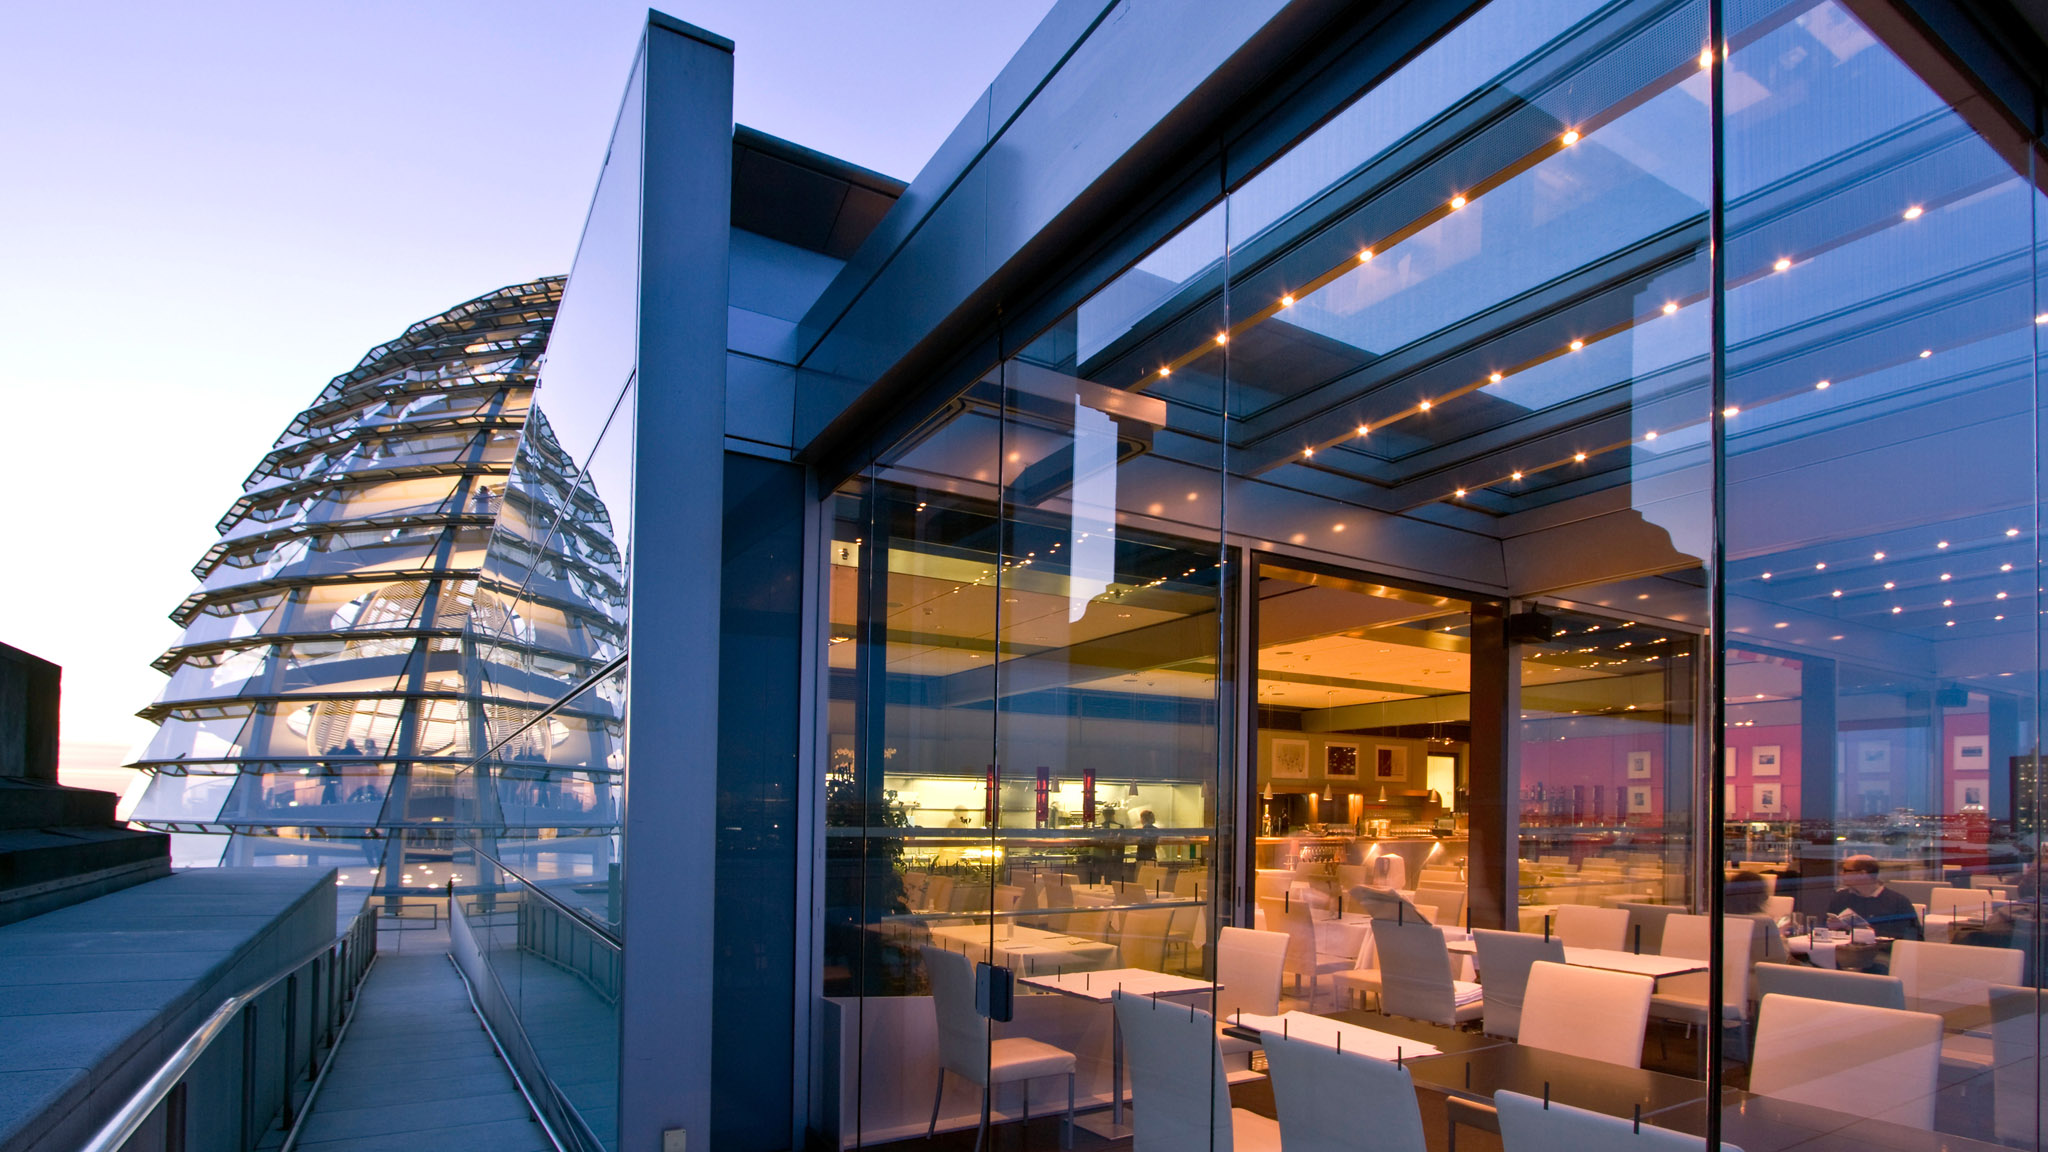 reichstag rooftop restaurant berlin. Black Bedroom Furniture Sets. Home Design Ideas